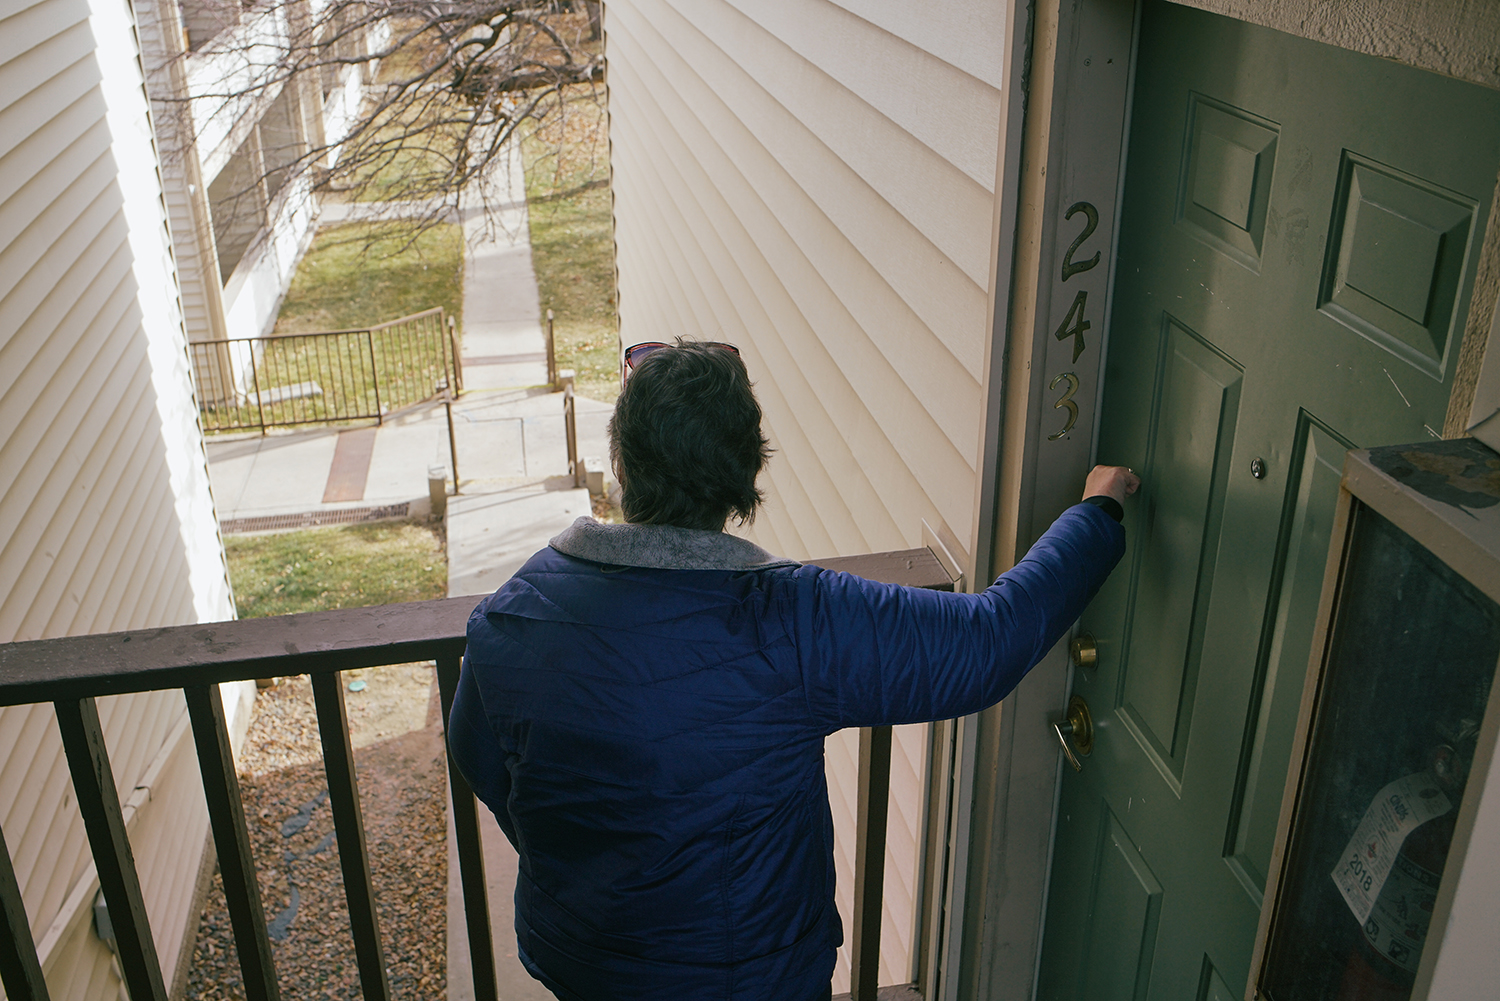 Lisa Bryant, a clinical case manager with Mental Health Center of Denver, knocks on the apartment door of a program participant who uses his social impact bond housing voucher to live in a private apartment complex.